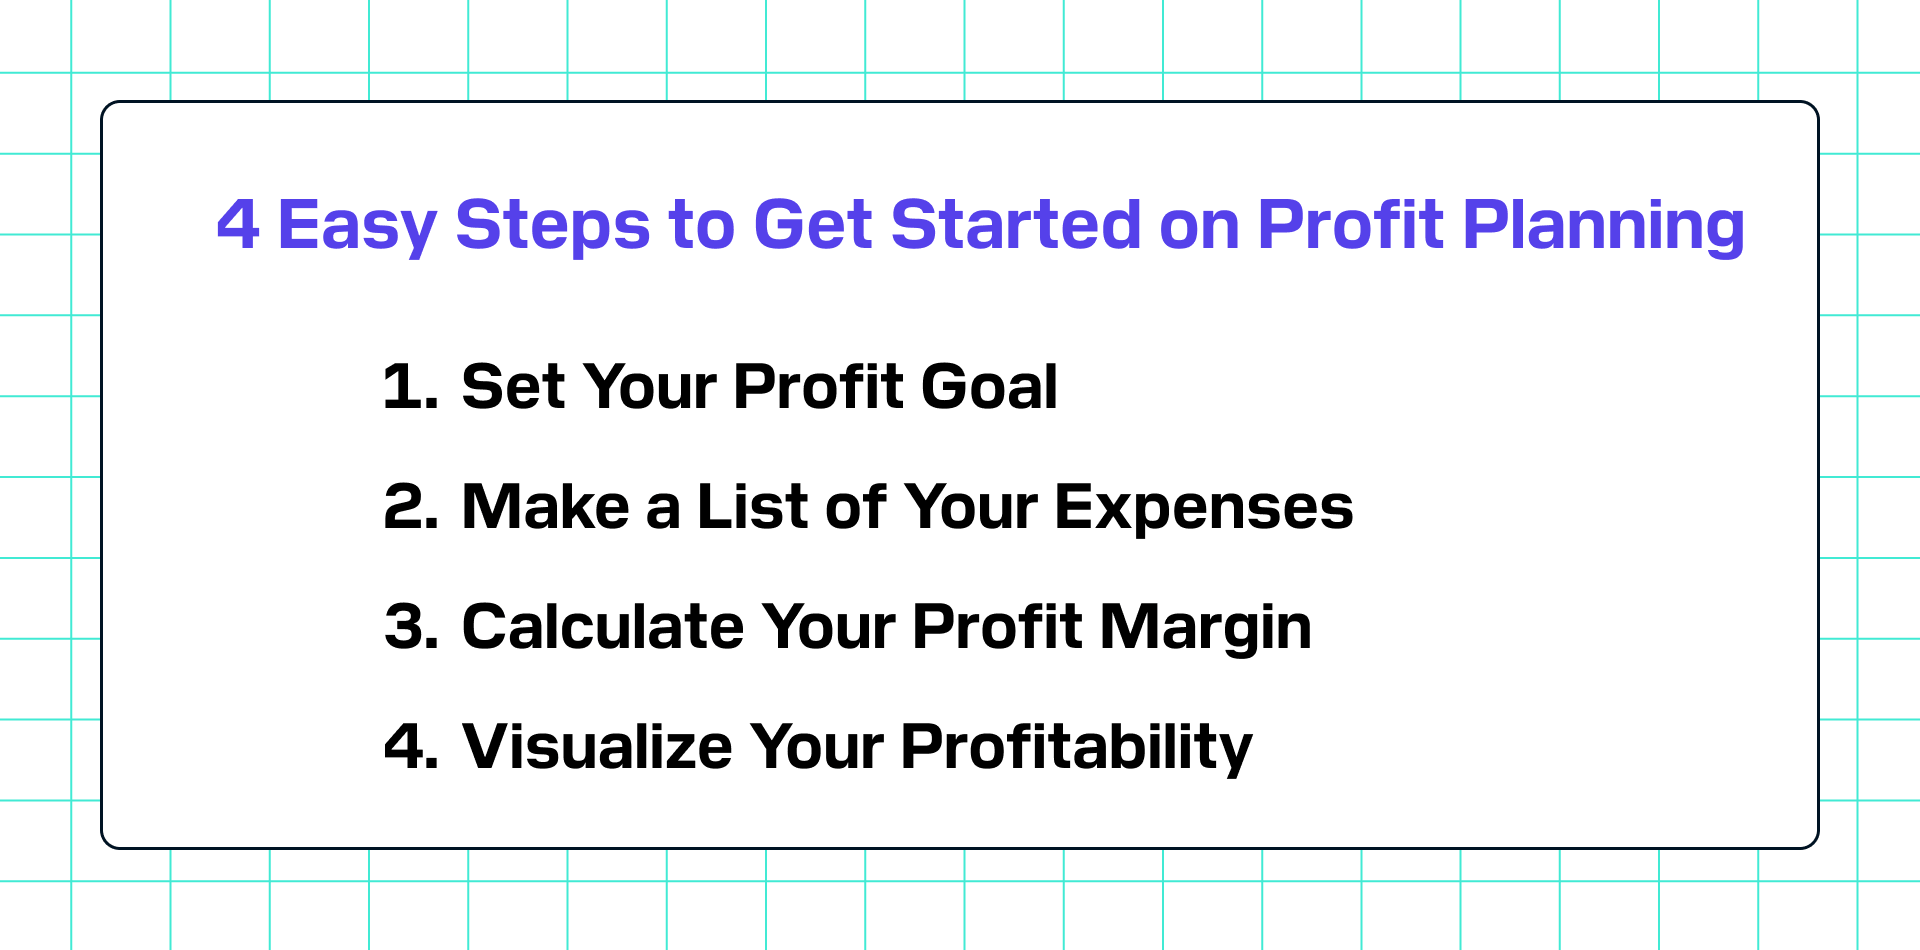 4 steps to plan your profit